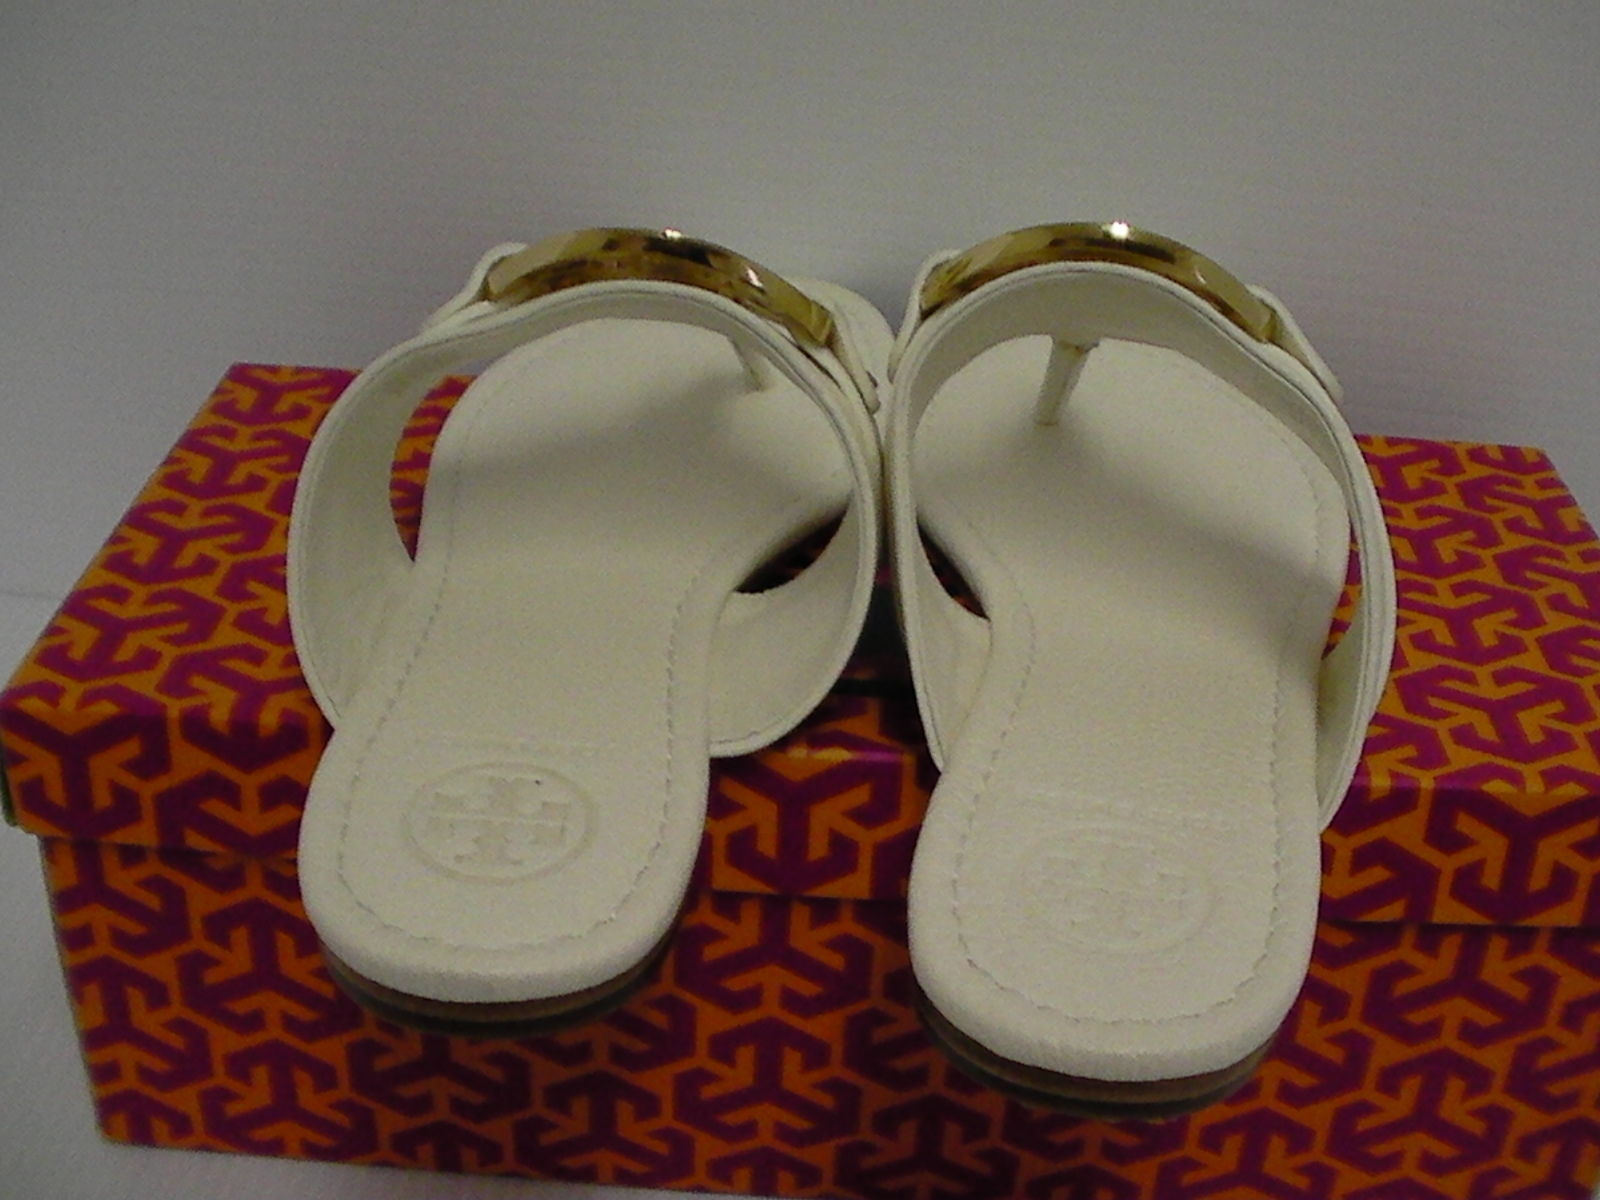 Women's tory burch slippers amanda flat thong tumbled leather bleach size 8.5